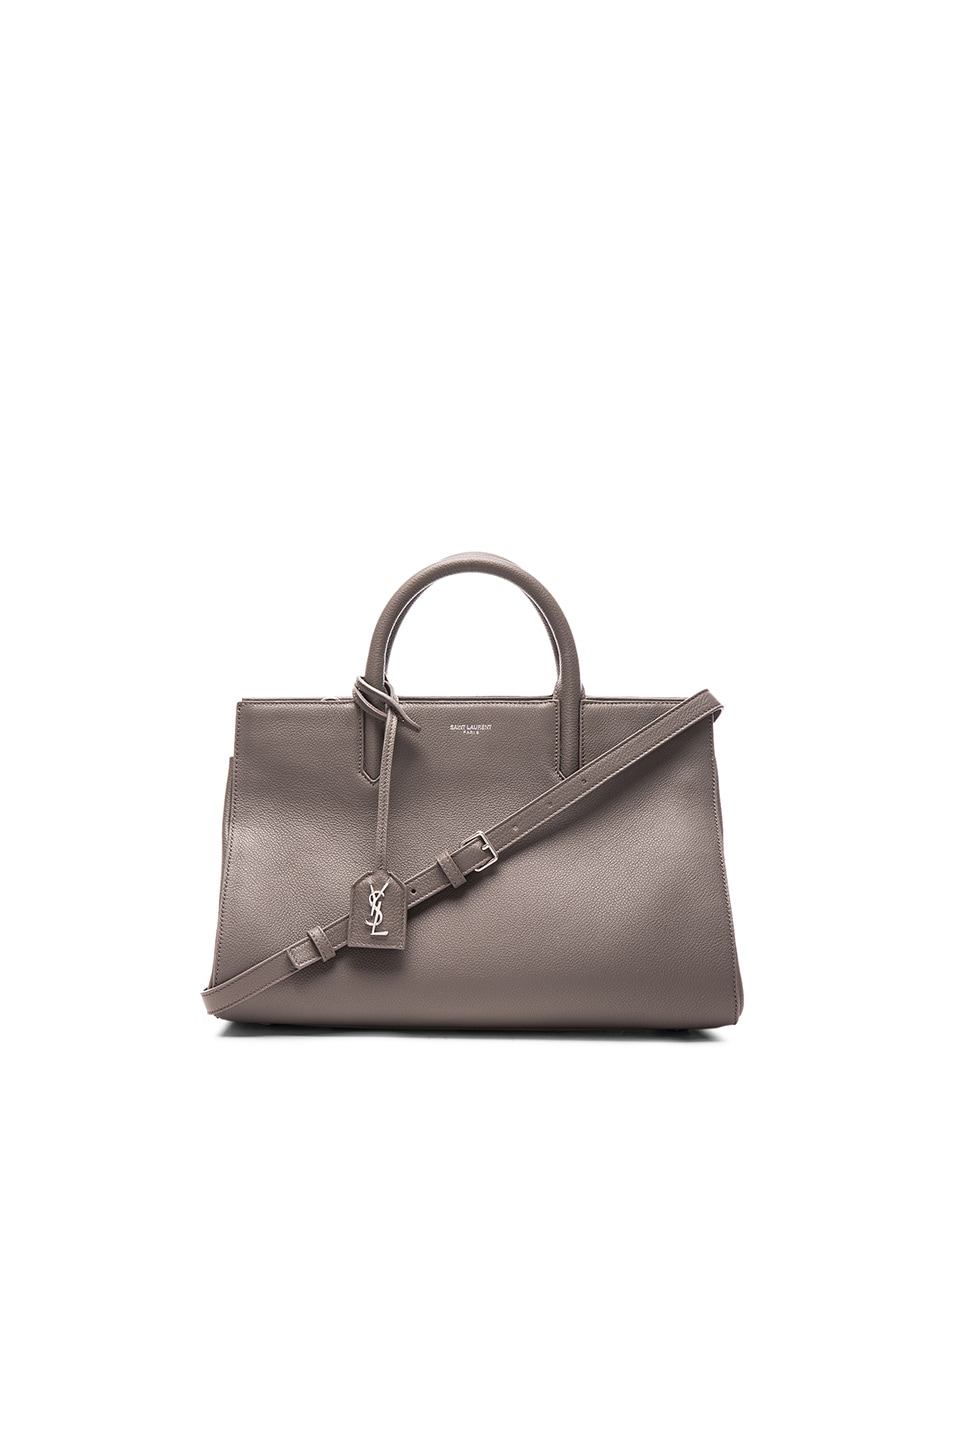 Image 1 of Saint Laurent Small Monogramme Rive Gauch Bag in Fog